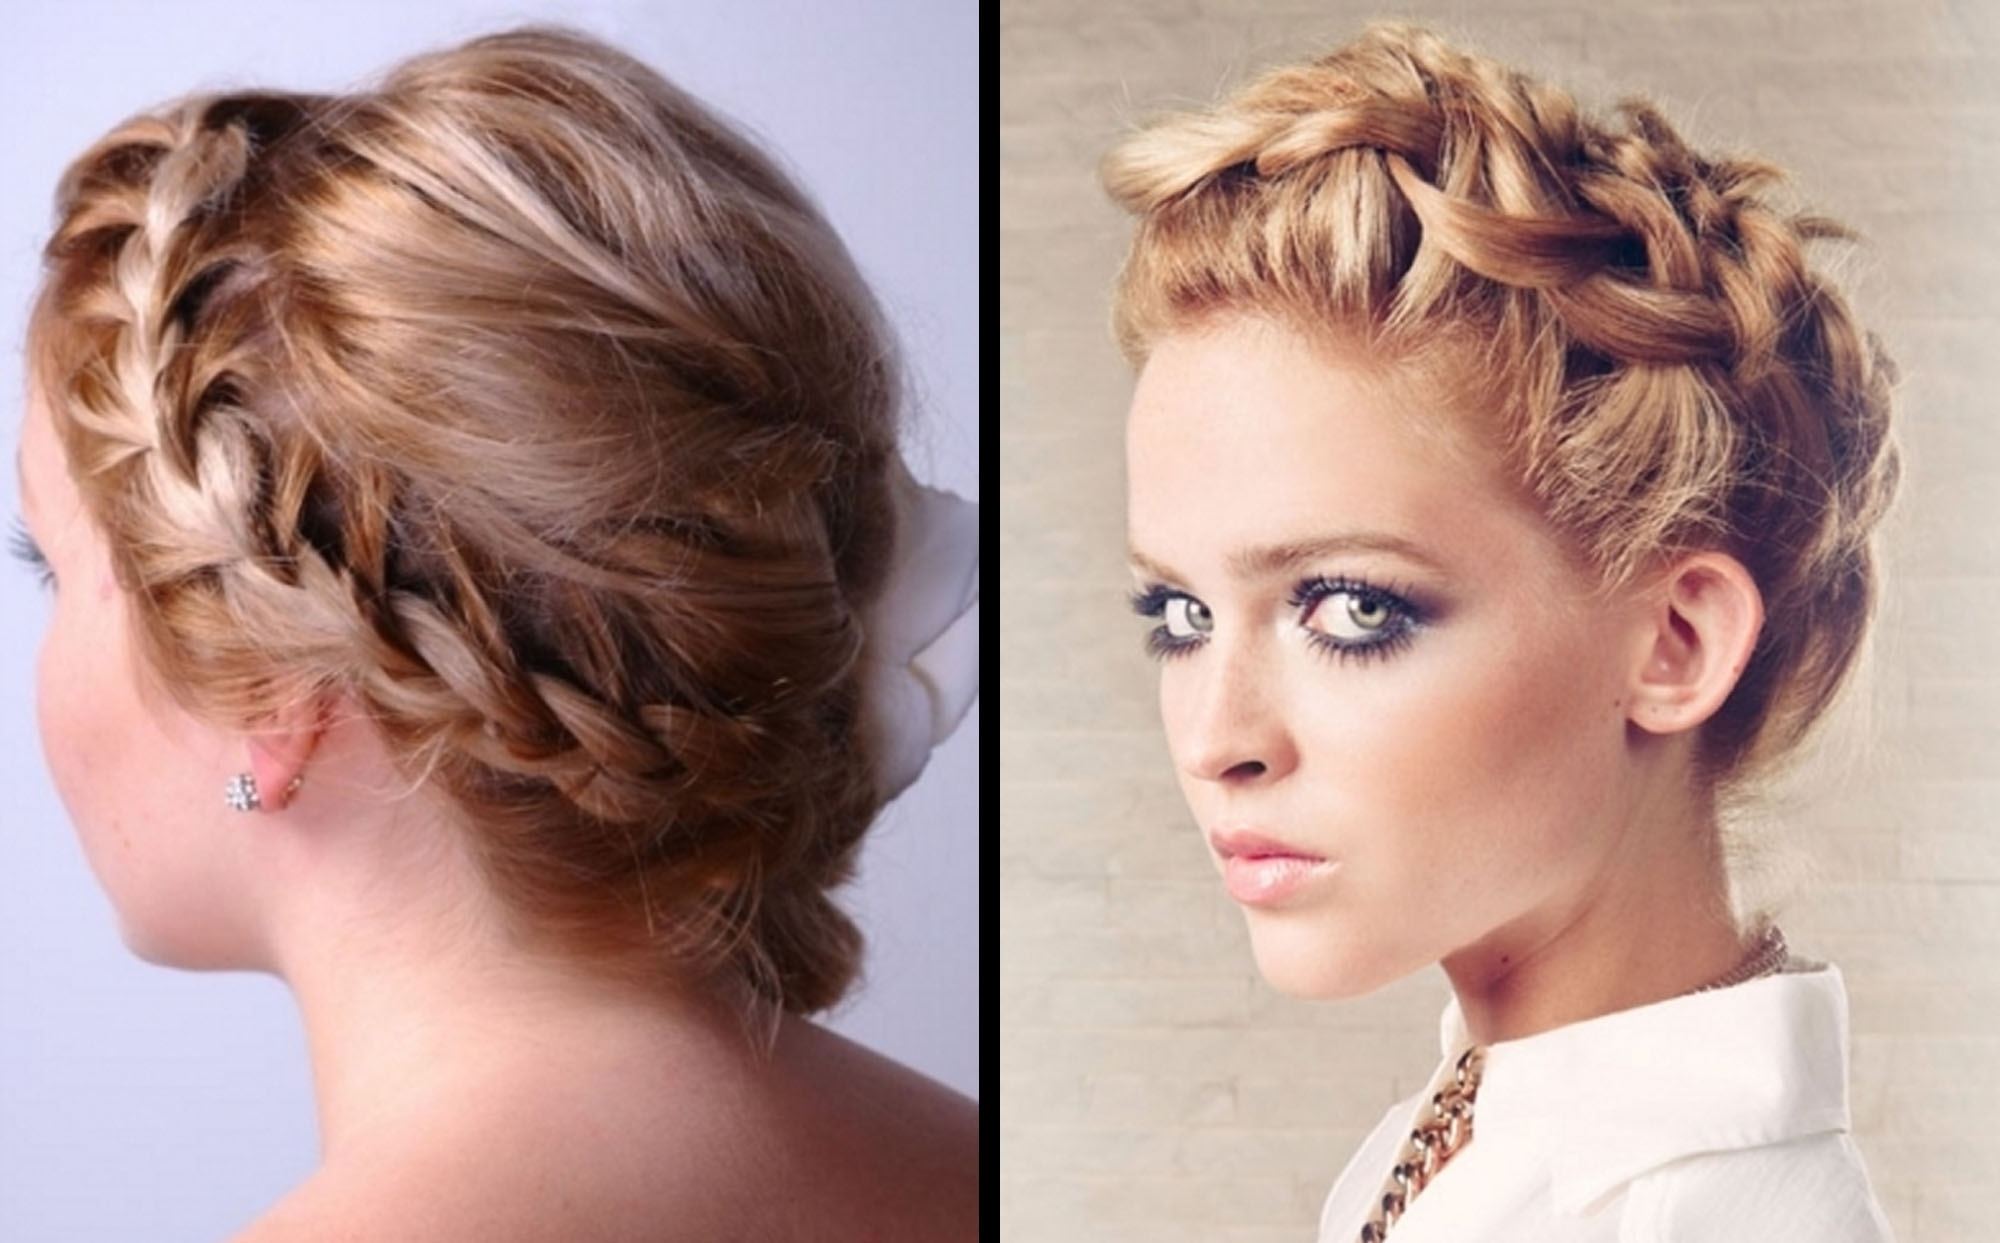 For Short Hair With Braids Cute Easy Updos For Short Hair A She Intended For Cute And Easy Updo Hairstyles For Short Hair (View 12 of 15)